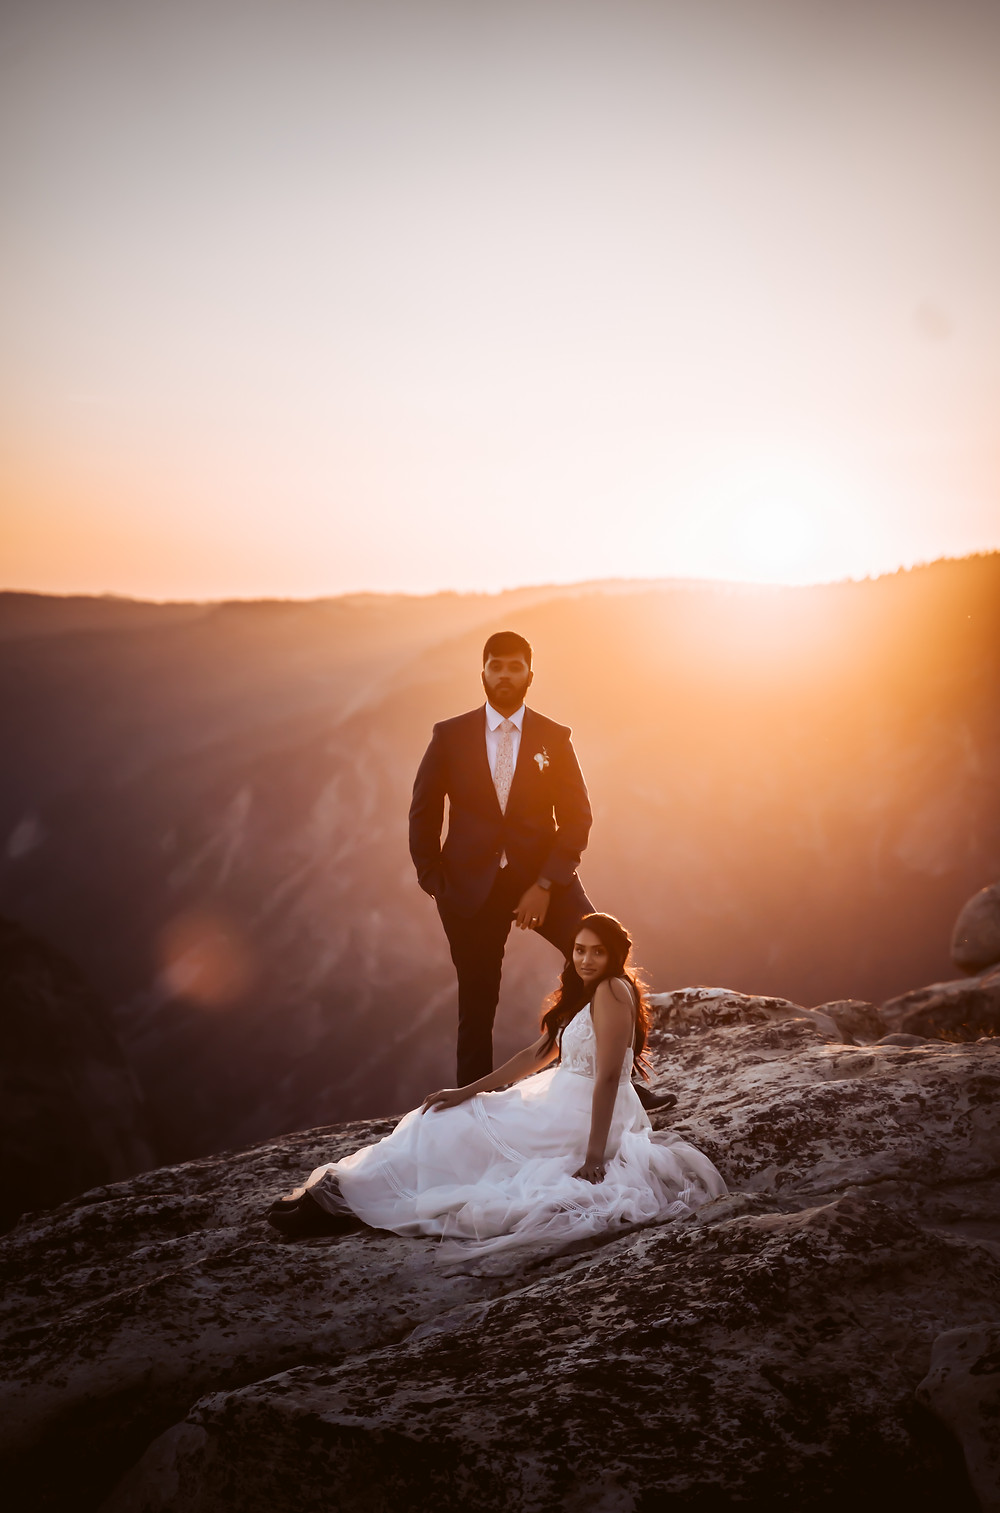 A wedding elopement couple sitting on a rock in front of a sunset overlooking the Yosemite Valley